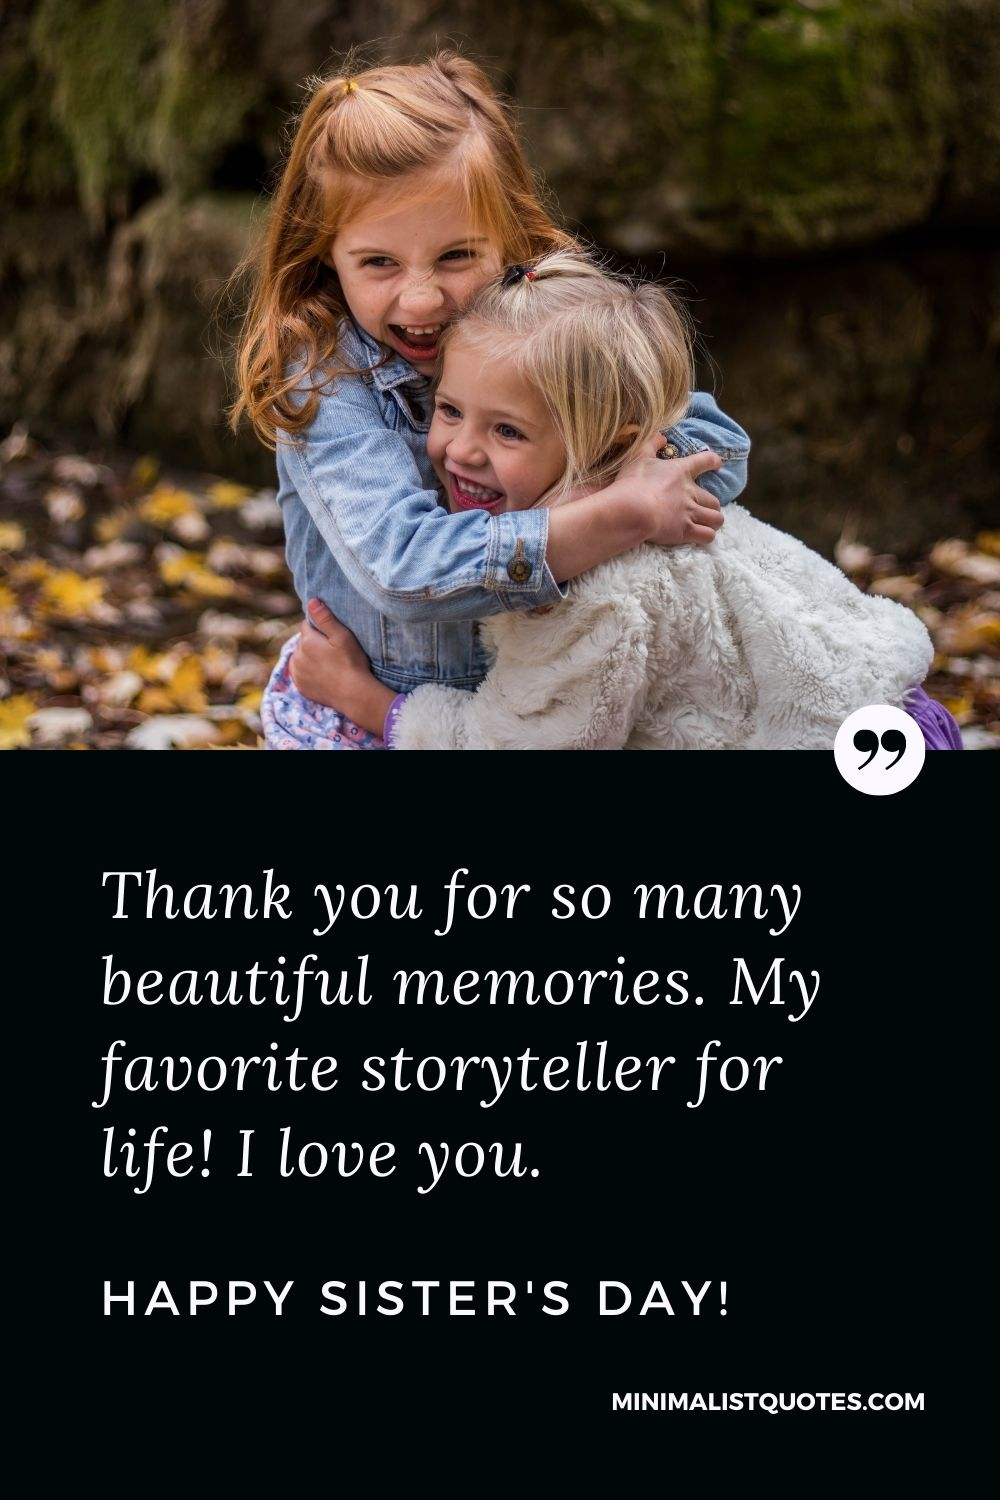 Sister's Day Quote, Wish & Message With Image: Thank you for so many beautiful memories. My favorite storyteller for life! I love you. Happy Sister's Day!